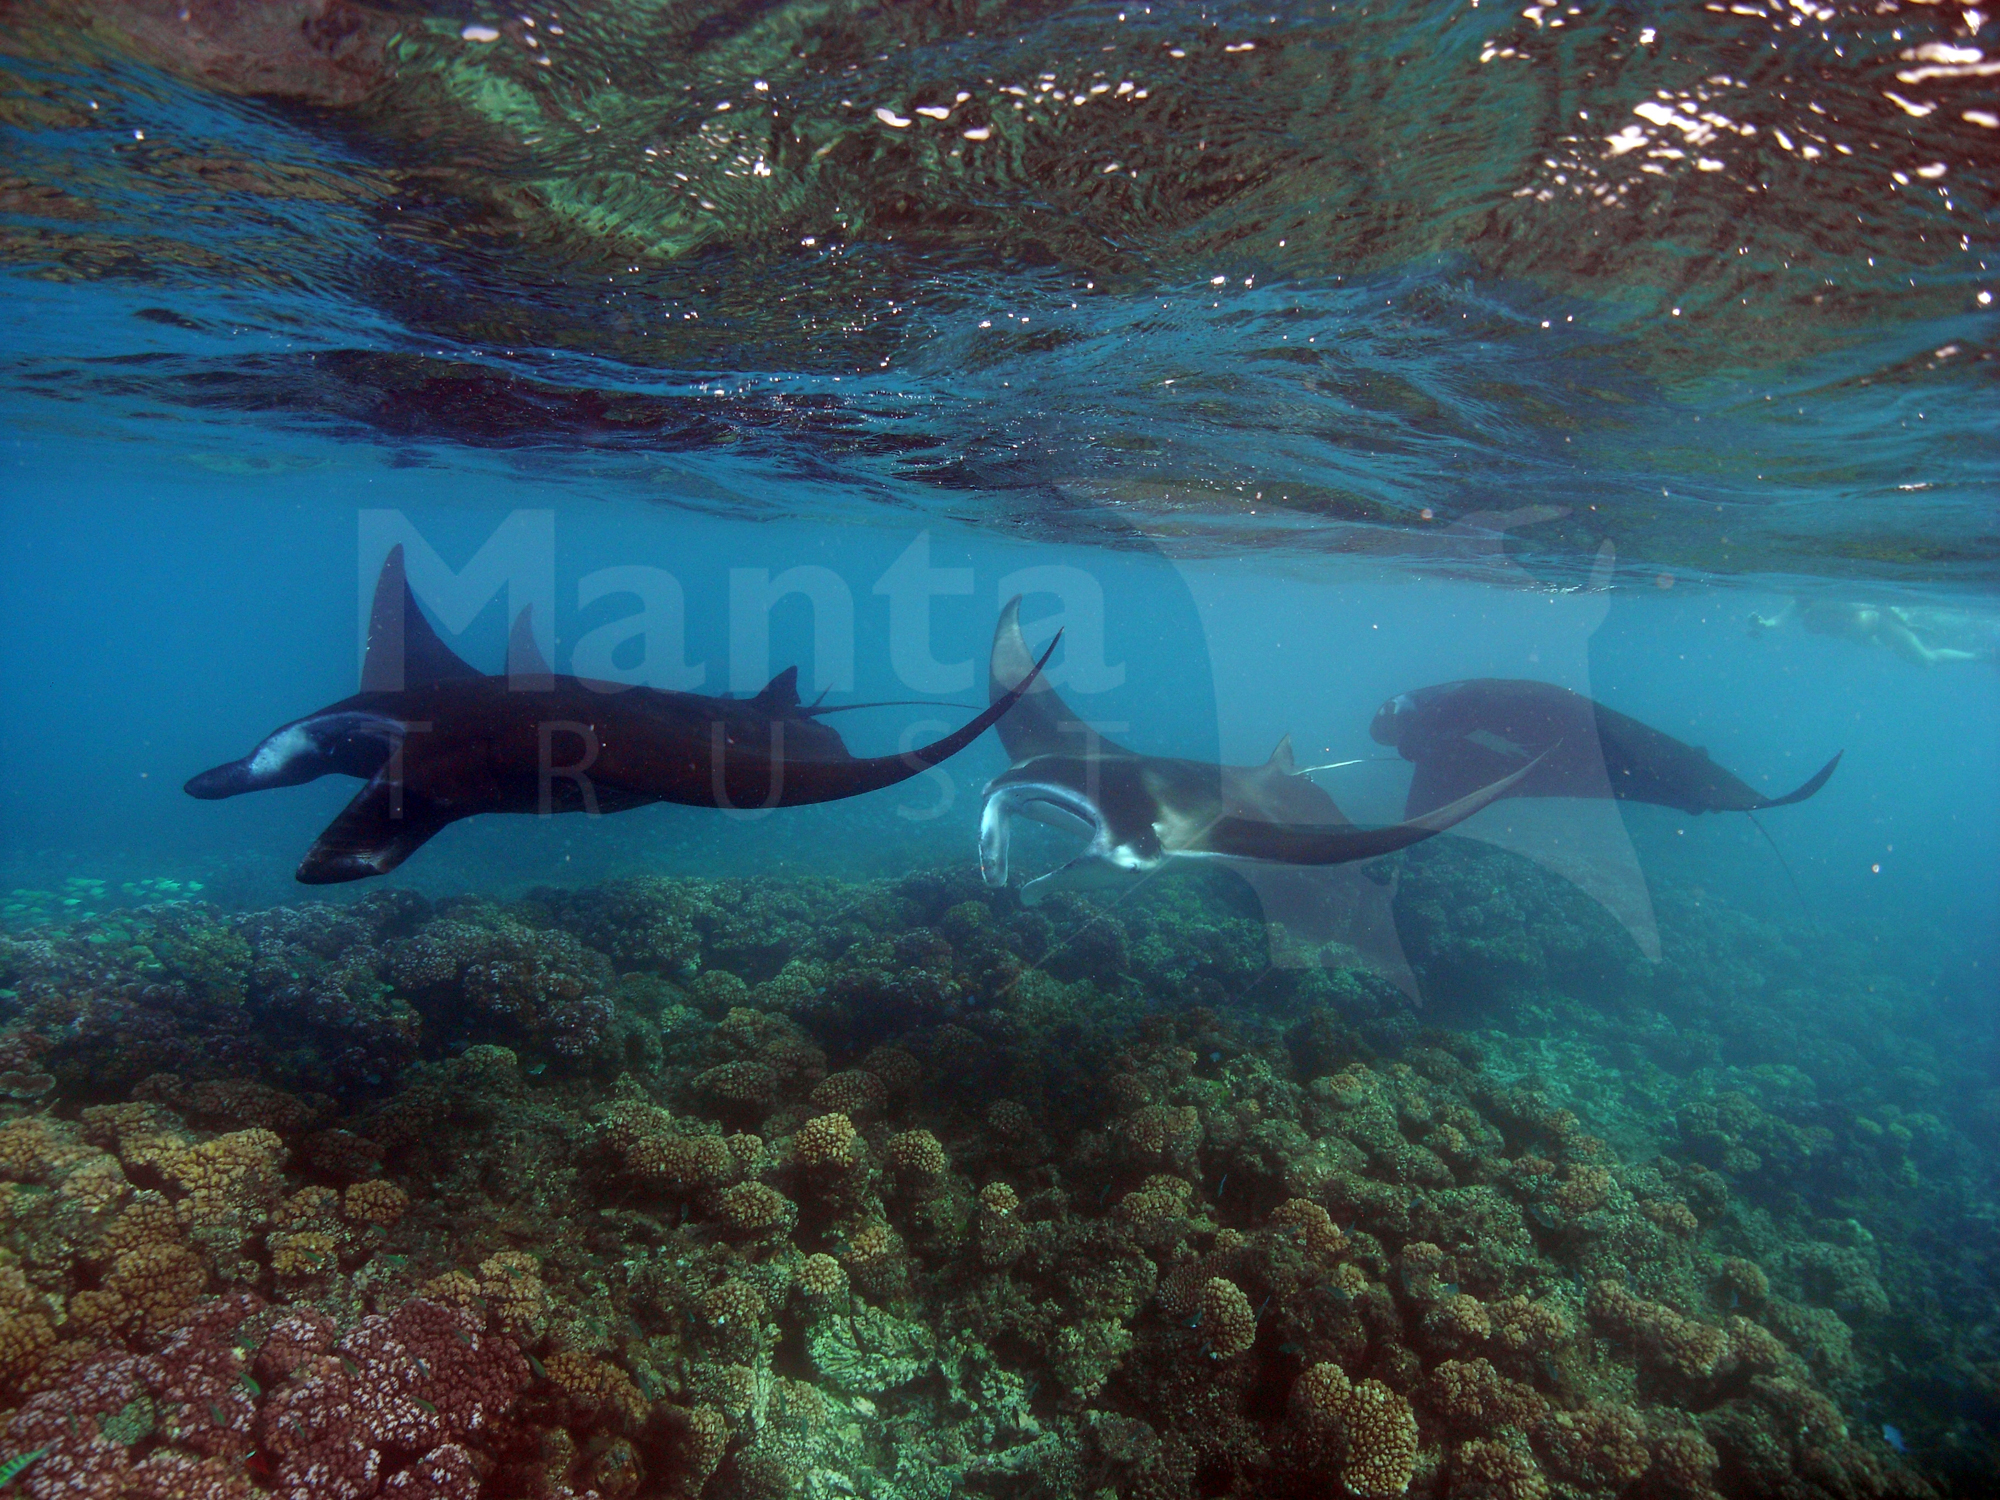 Female leads males into the shallows, Manta Channel, Yasawas, Fiji. Steve Pollett.jpg